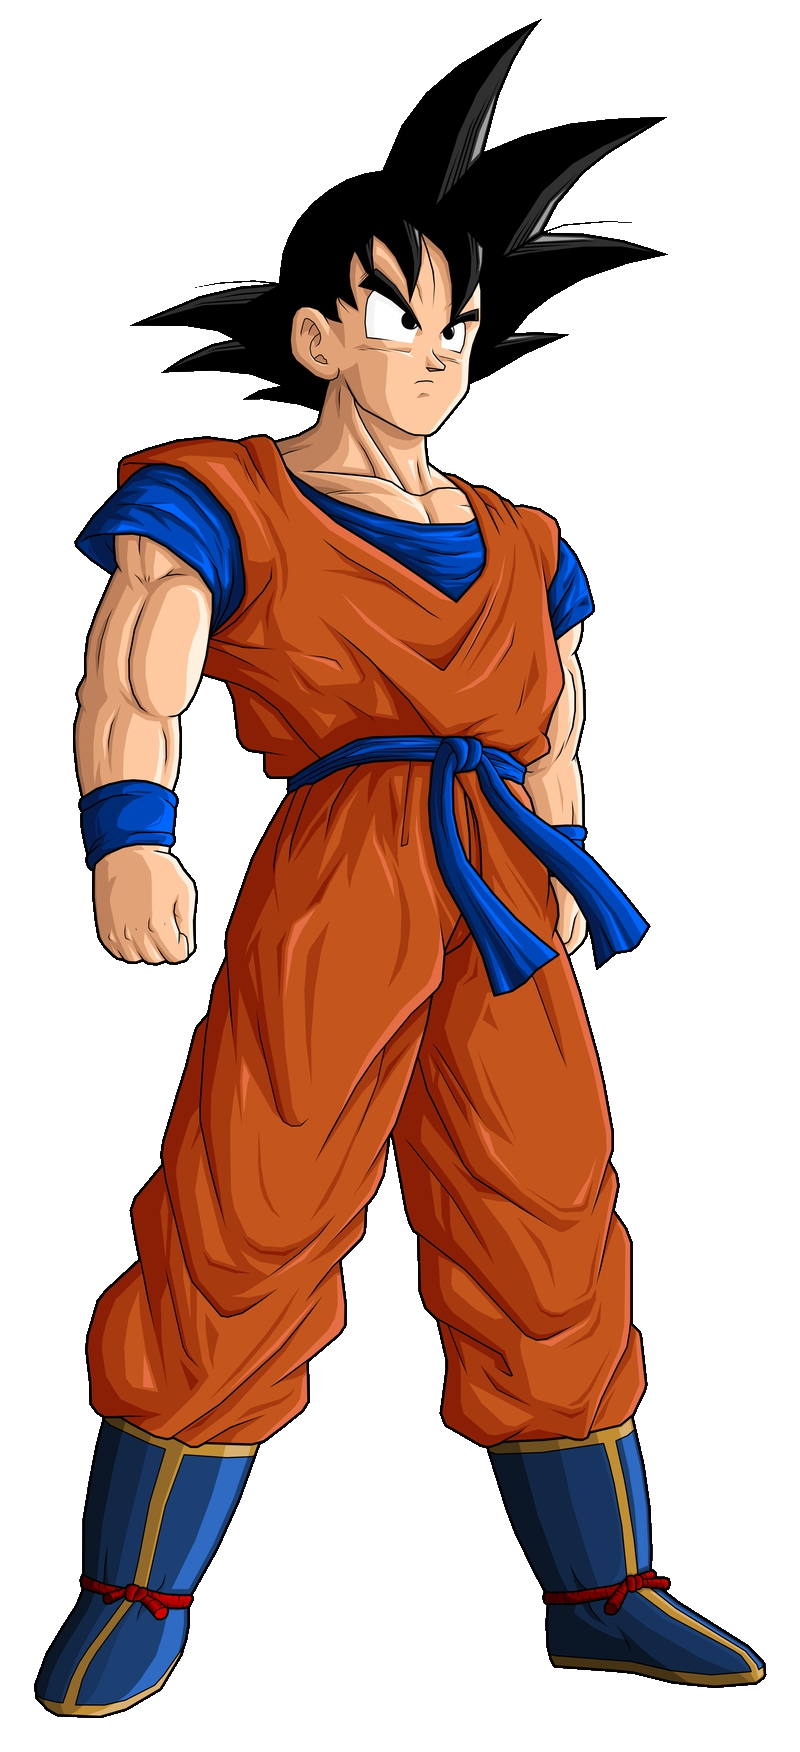 Son goku dragon ball wiki - Dragon ball z goku son ...